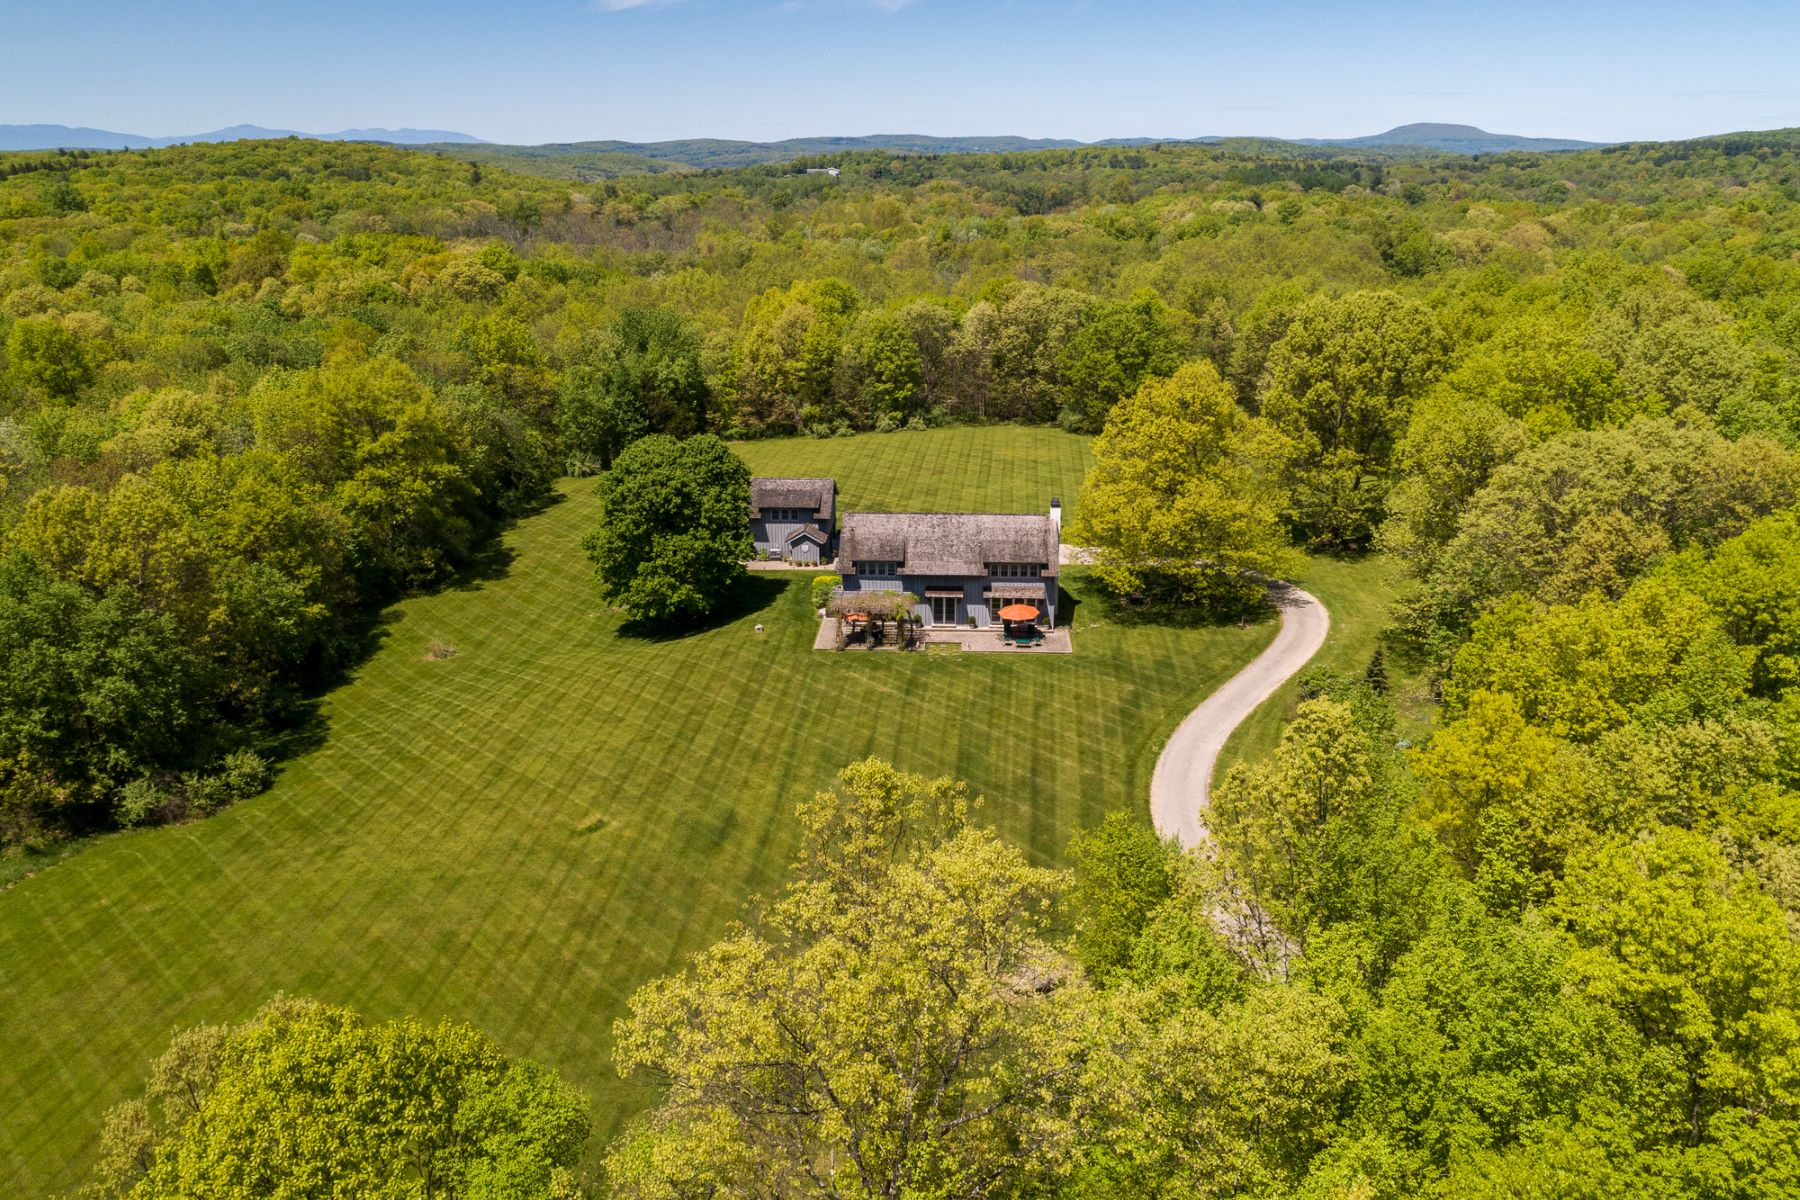 Single Family Homes for Sale at Whimsy Woods 461 Woodstock Road Millbrook, New York 12545 United States